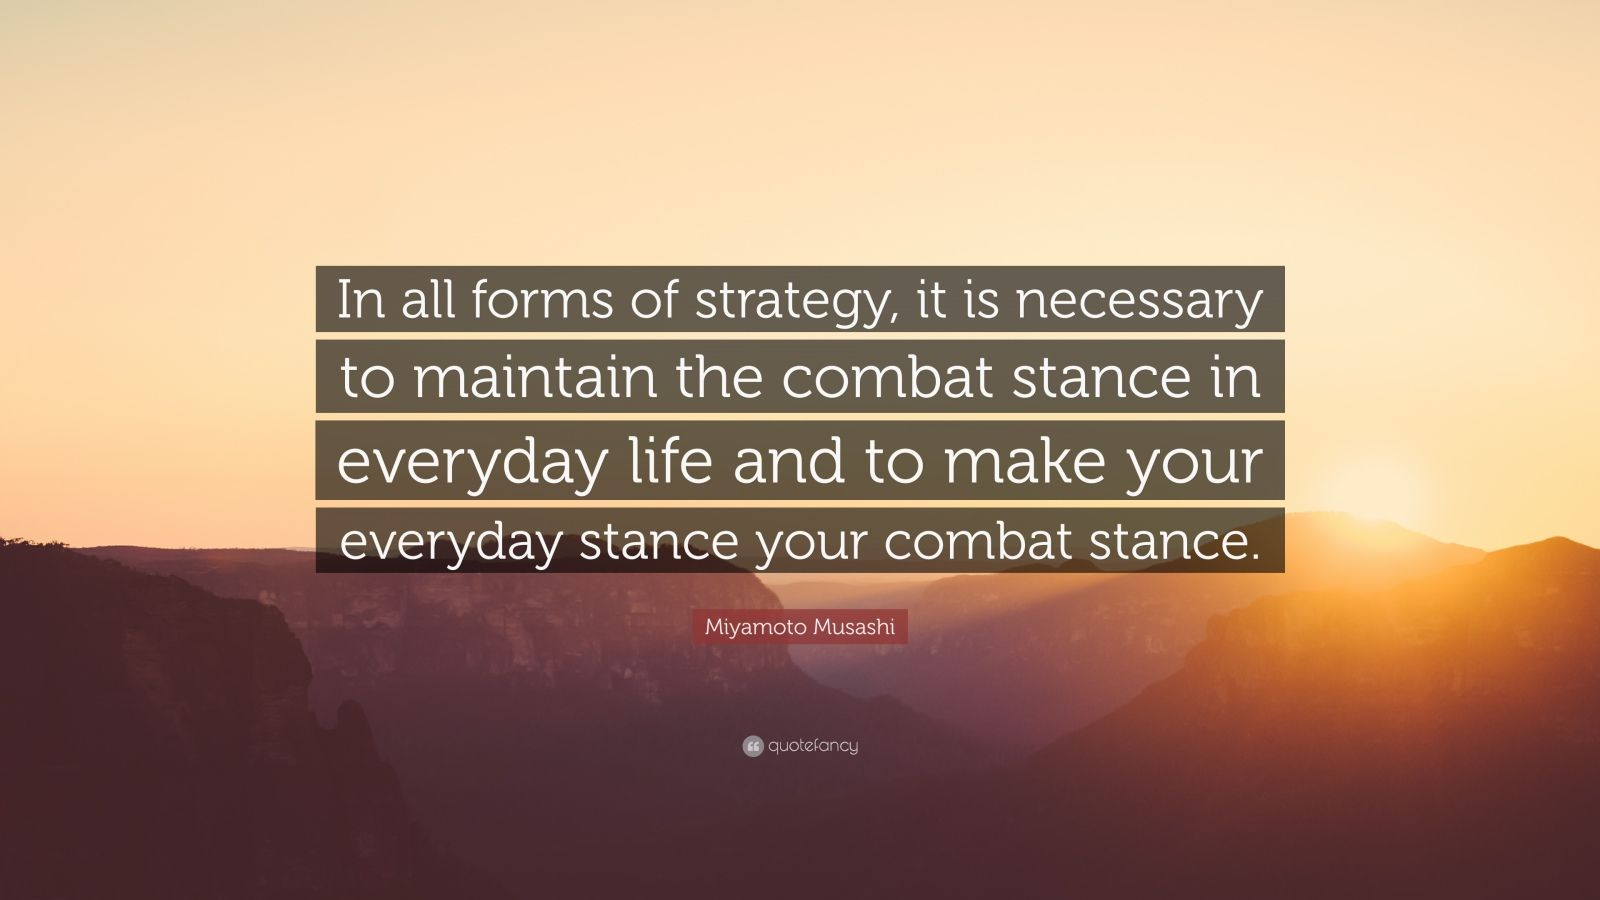 """Miyamoto Musashi Quote: """"In all forms of strategy, it is necessary to maintain the combat stance in everyday life and to make your everyday stance your combat stance."""""""